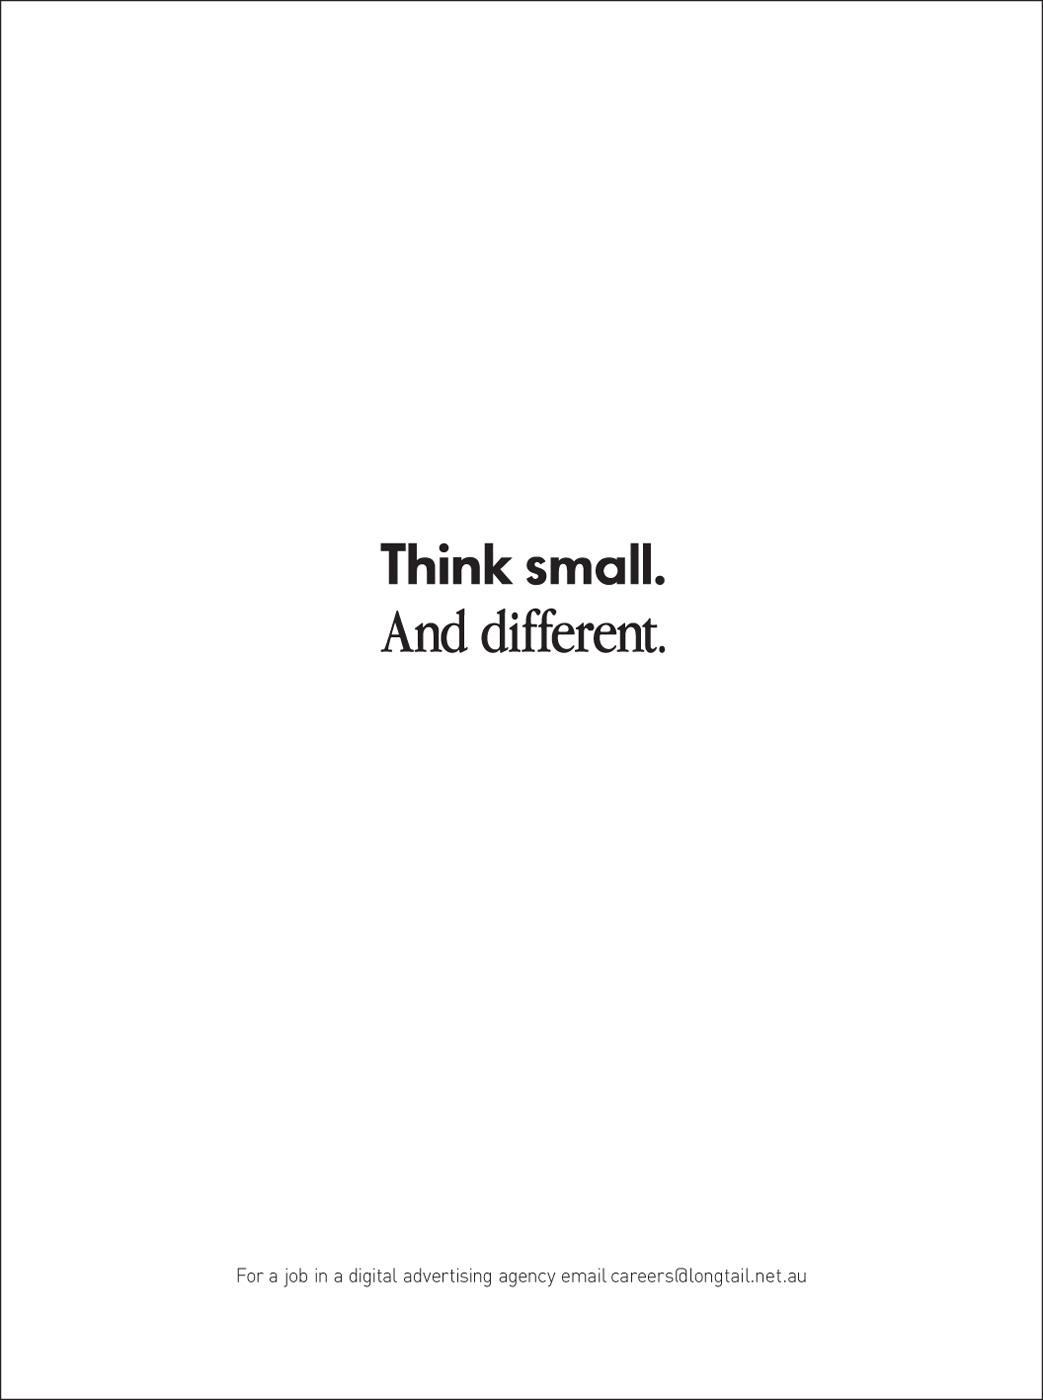 Longtail Communications Print Ad -  Think small